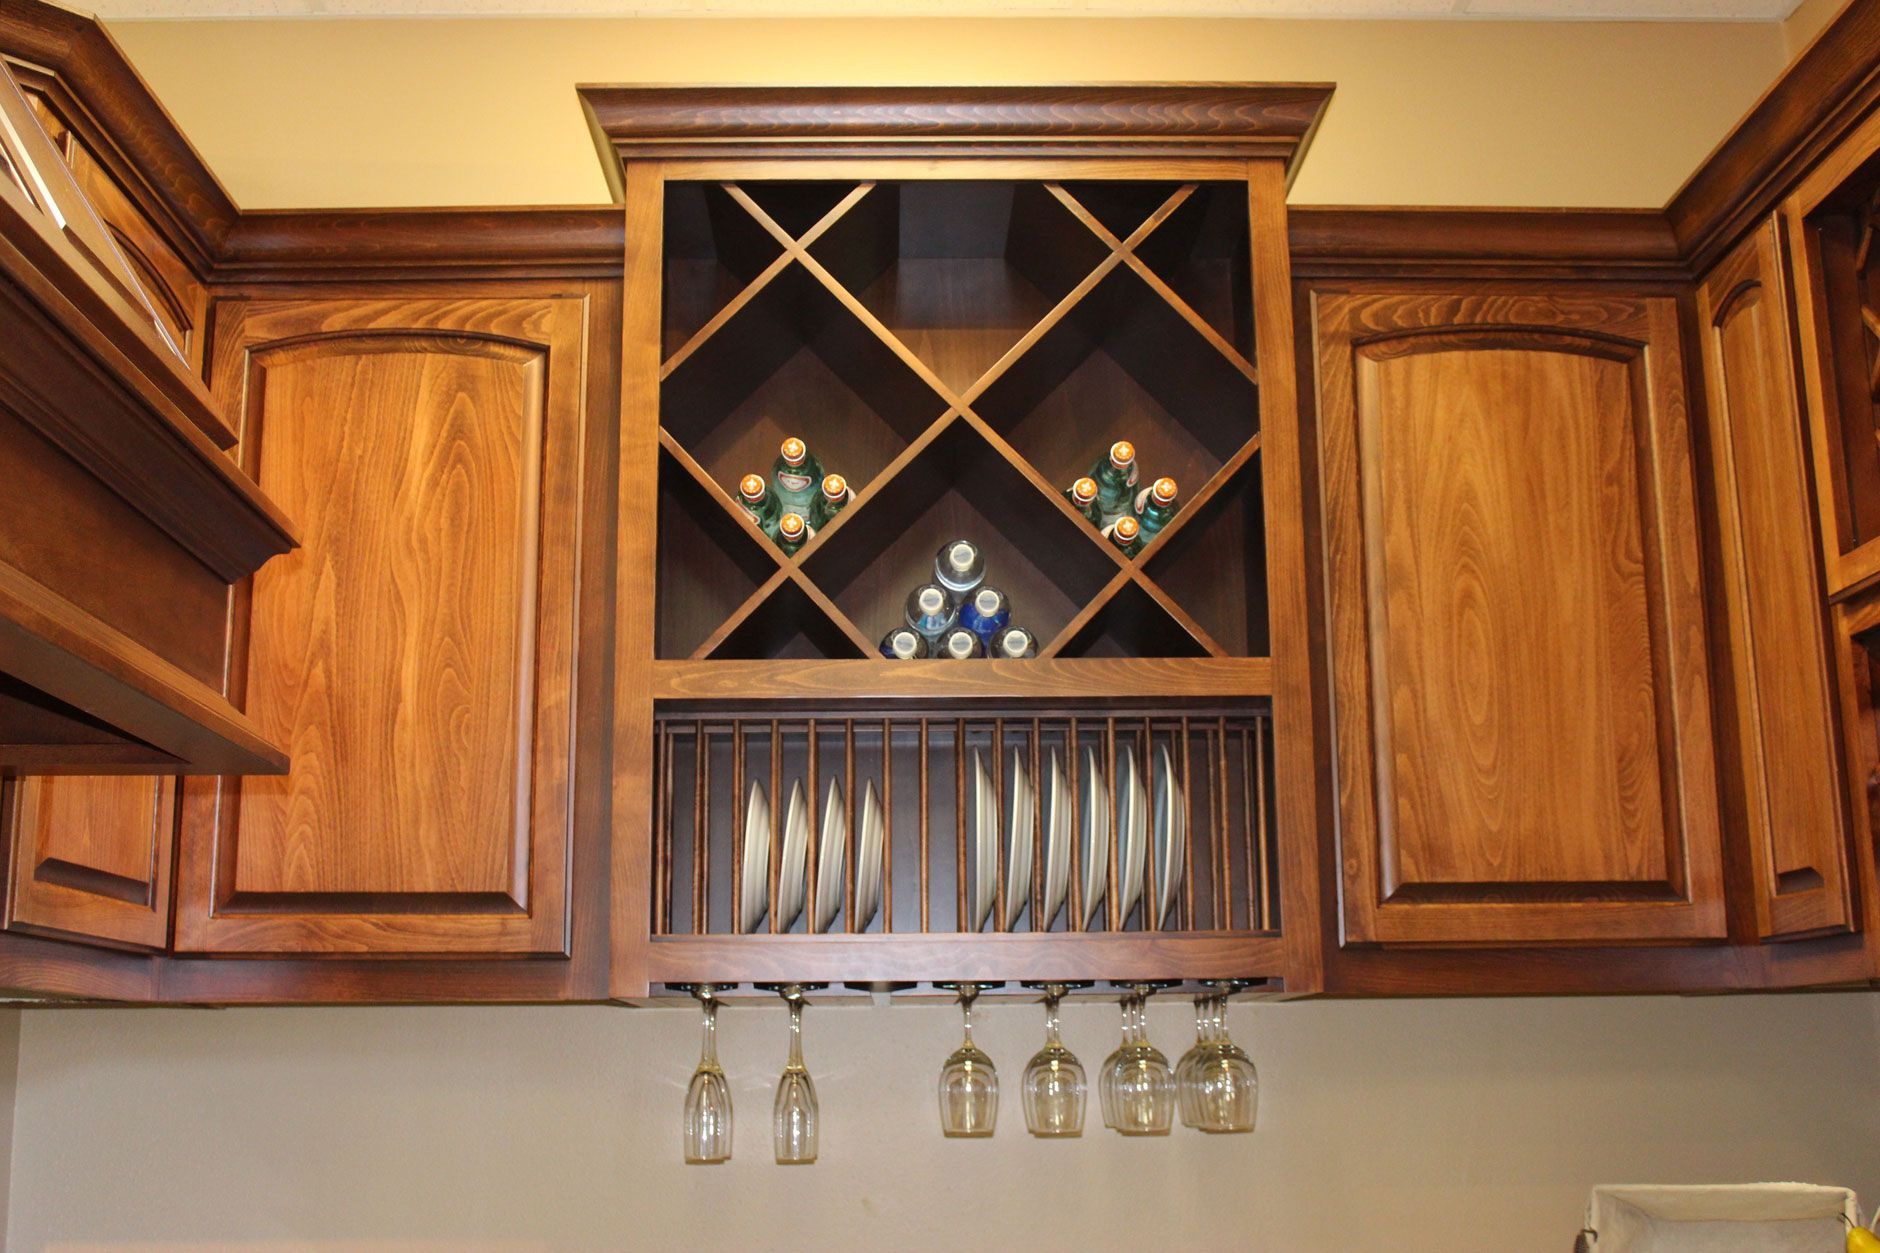 Wine Rack Big X Style Burrows Cabinets Central Texas Builder Direct Custom Cabinets Kitchen Shelf Design Kitchen Cabinet Design Kitchen Cabinets